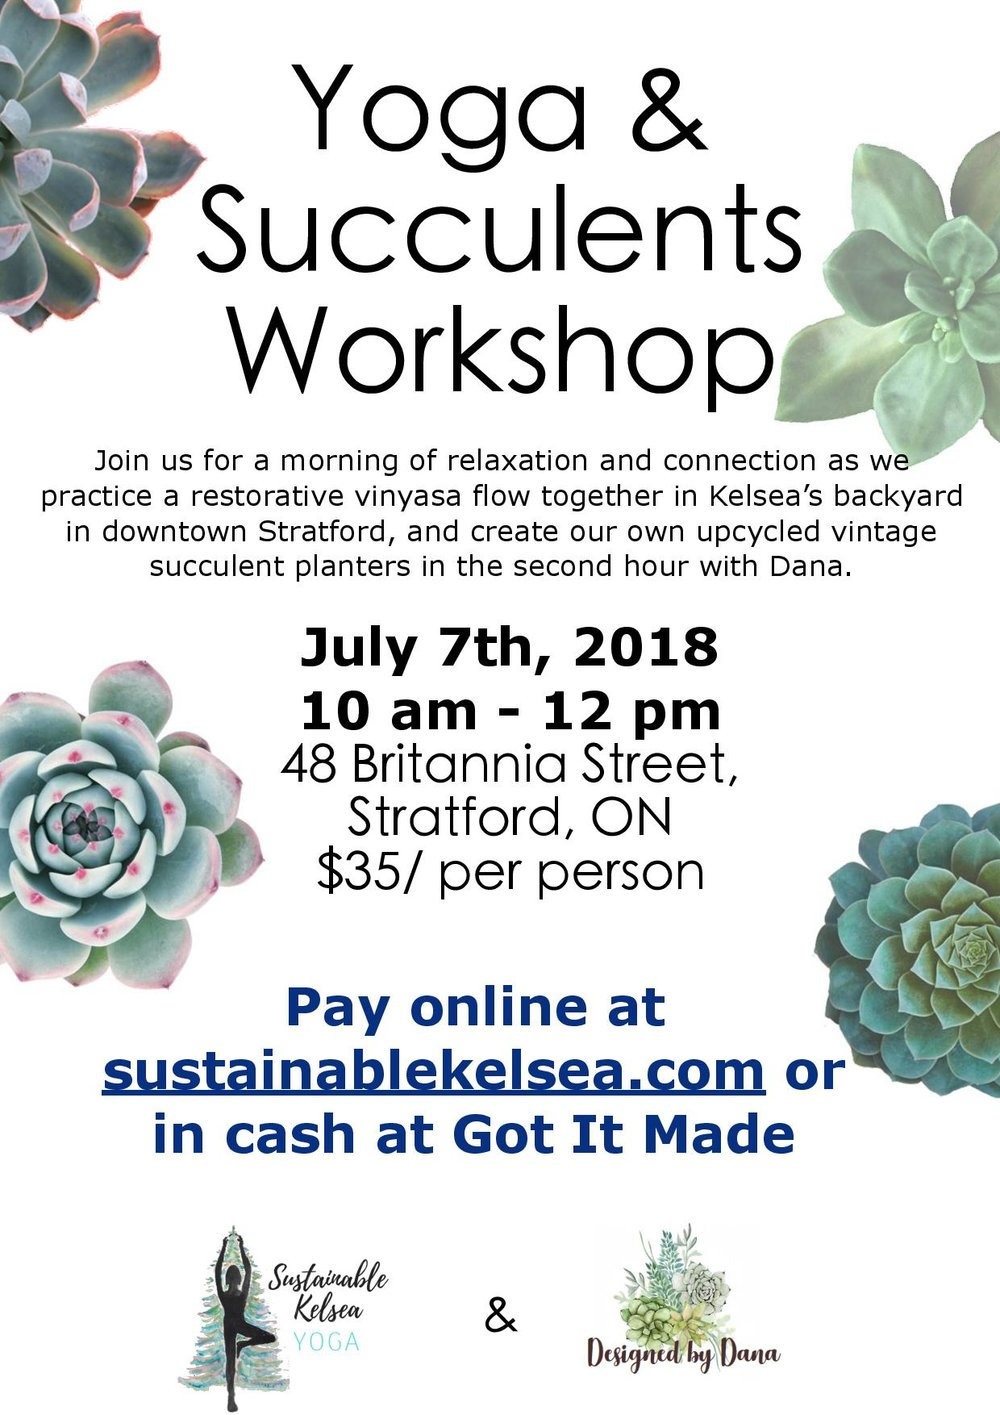 Yoga+SucculentsJuly 7th, 2018 | 10 am - 12 pm | Downtown Stratford at 48 Britannia Street.  - Come relax and have fun with us as we start with an hour of yoga to connect to our bodies and the environment around us, and continue with an hour of succulents planting. You'll leave relaxed and with a beautiful new plant in your hands!